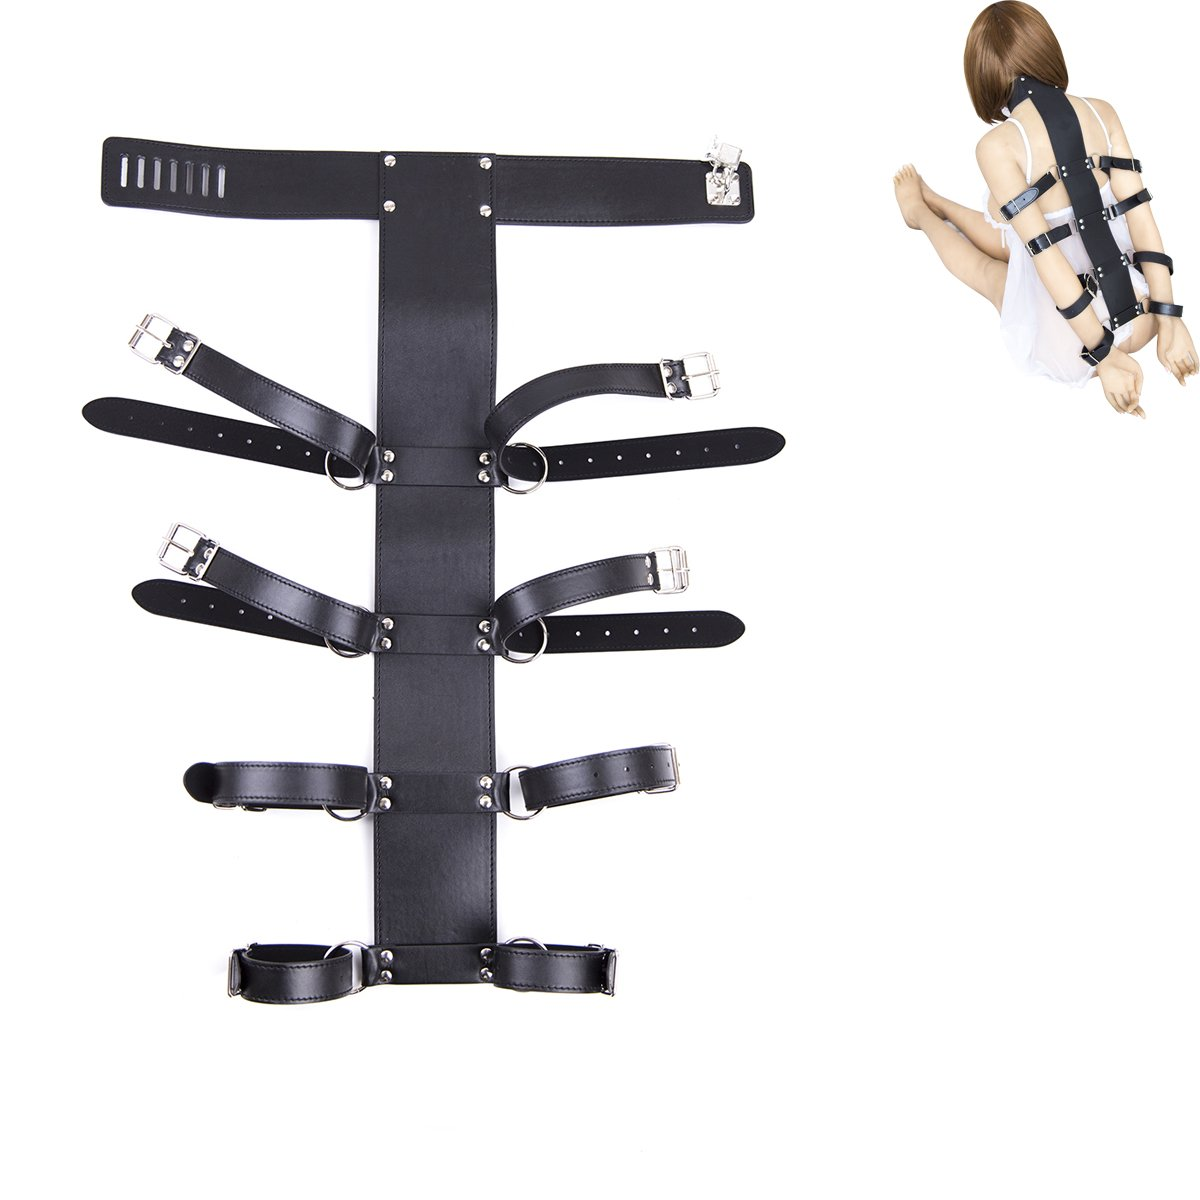 Lononvie Sex PU Bed Straps Bondage Restraints System,Neck Collar with Adjustable 4pcs Handcuffs Back,Couples BDSM Game Kit,Black by Lononvie (Image #1)